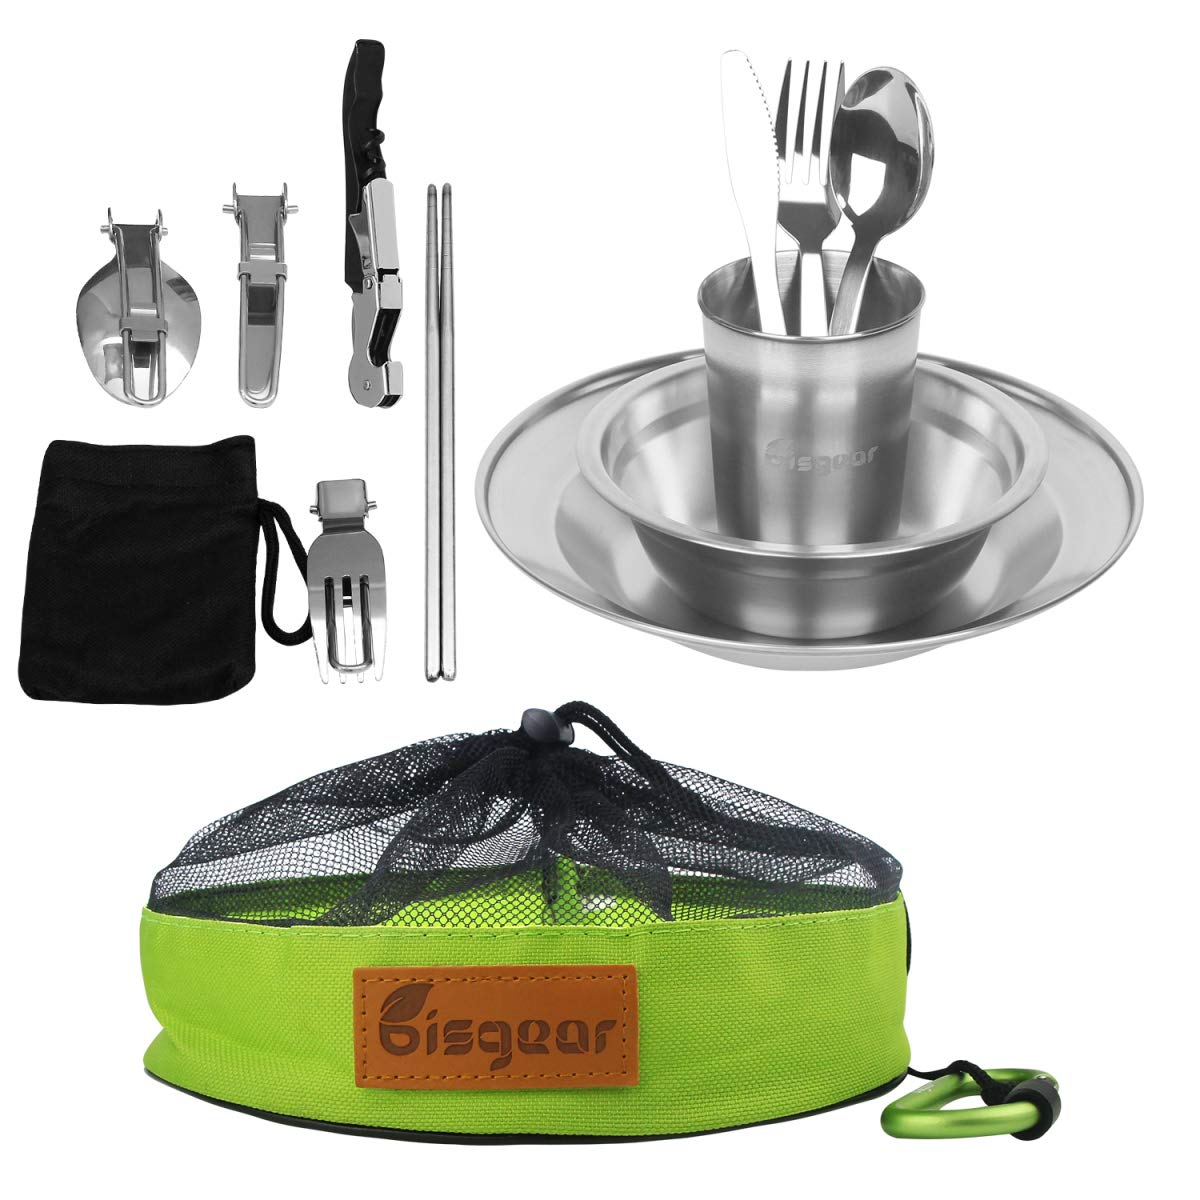 Bisgear 13pcs Stainless Steel Tableware Mess Kit Includes Plate Bowl Cup Spoon Fork Knife Chopsticks Carabiner Wine Opener Dishcloth & Mesh Travel Bag for Camping Backpacking & Hiking by Bisgear